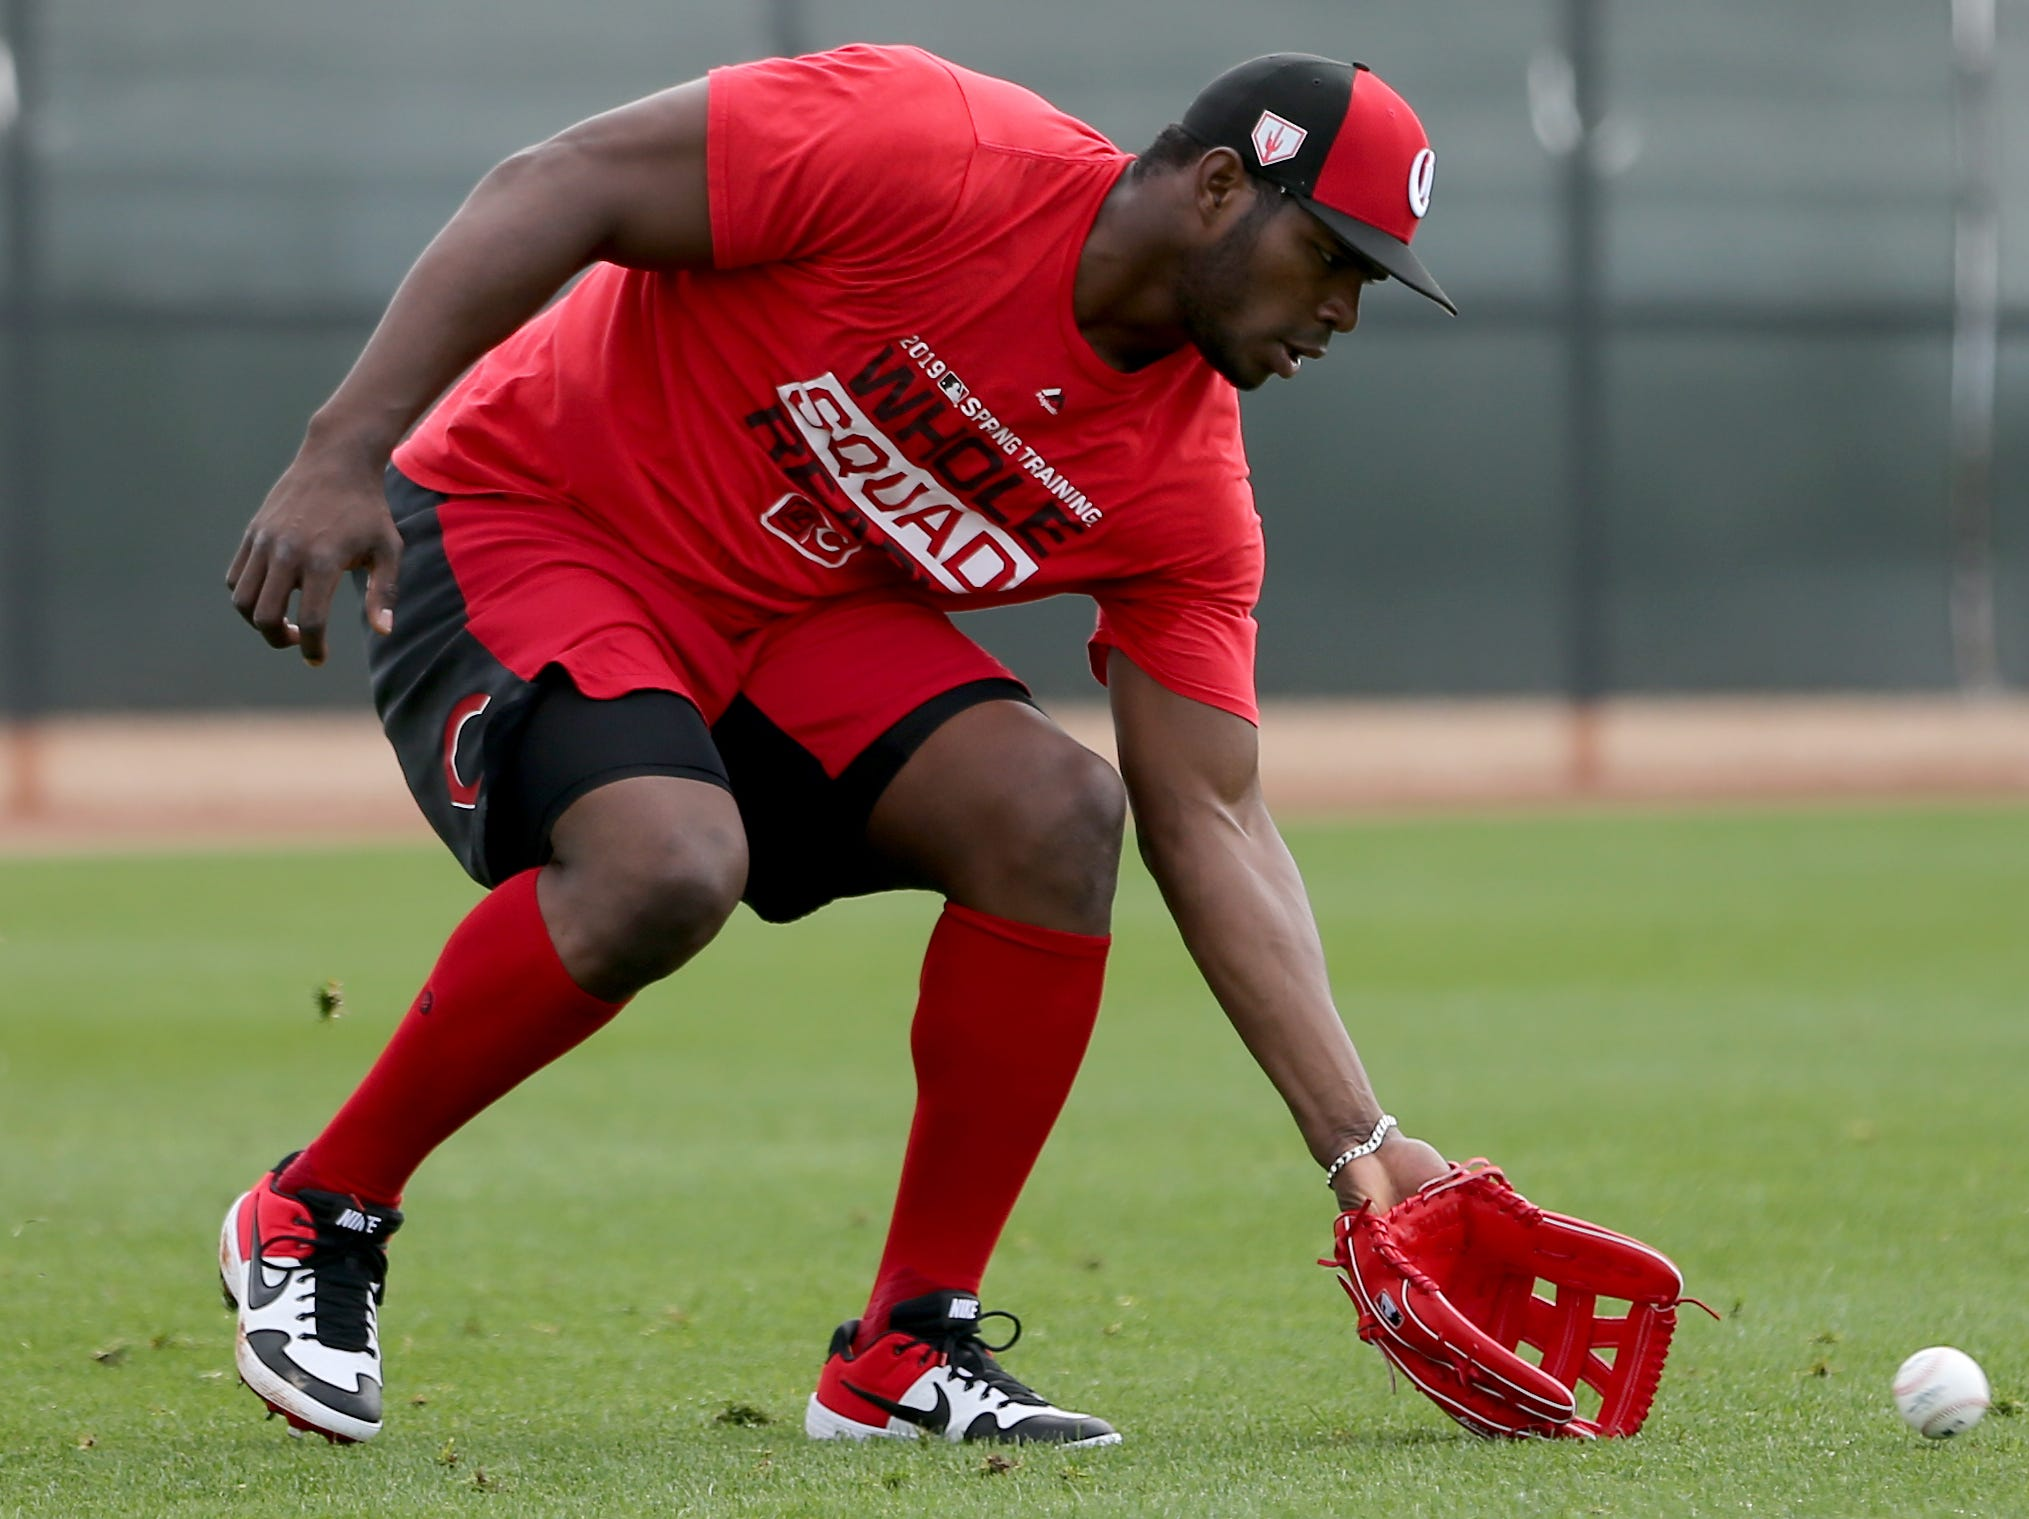 Cincinnati Reds right fielder Yasiel Puig (66) fields a ball, Friday, Feb. 15, 2019, at the Cincinnati Reds spring training facility in Goodyear, Arizona.